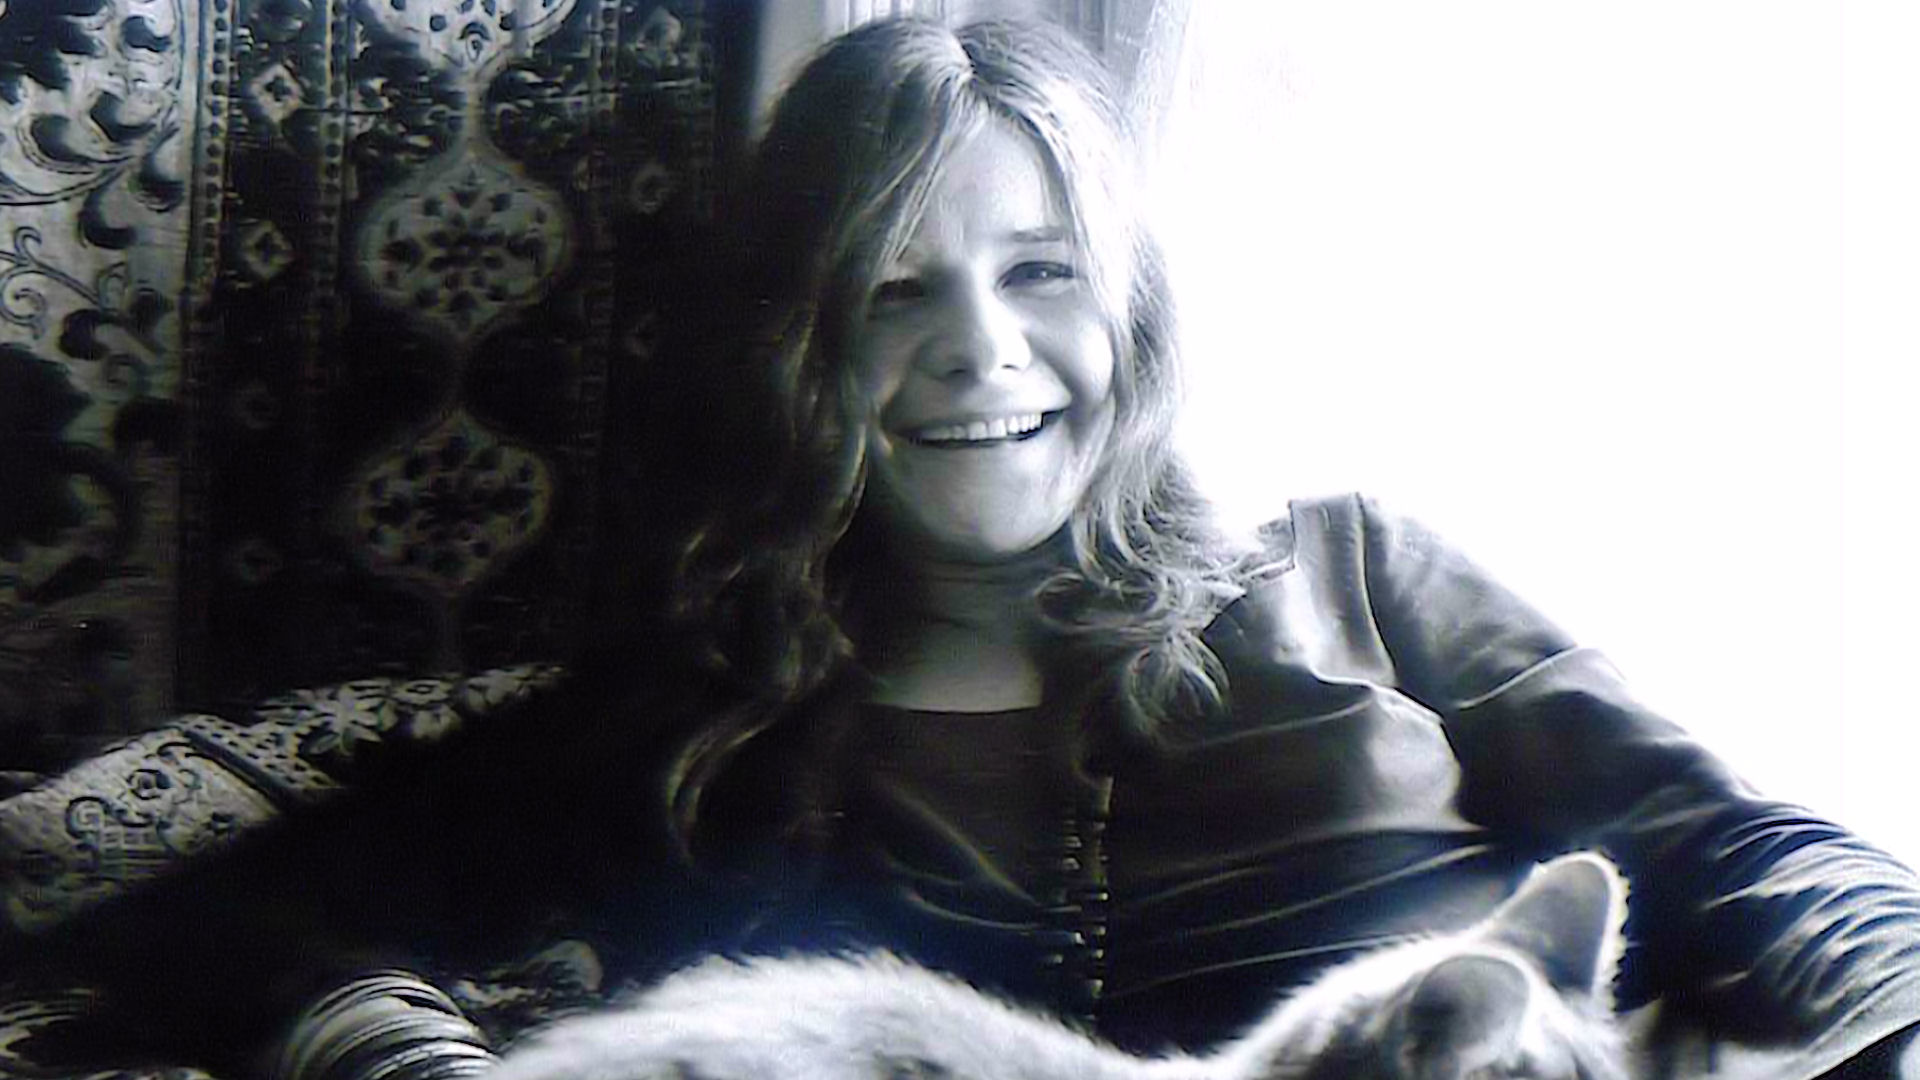 Janis Joplin Pictures, Images And Photos - Janis Joplin Galleries